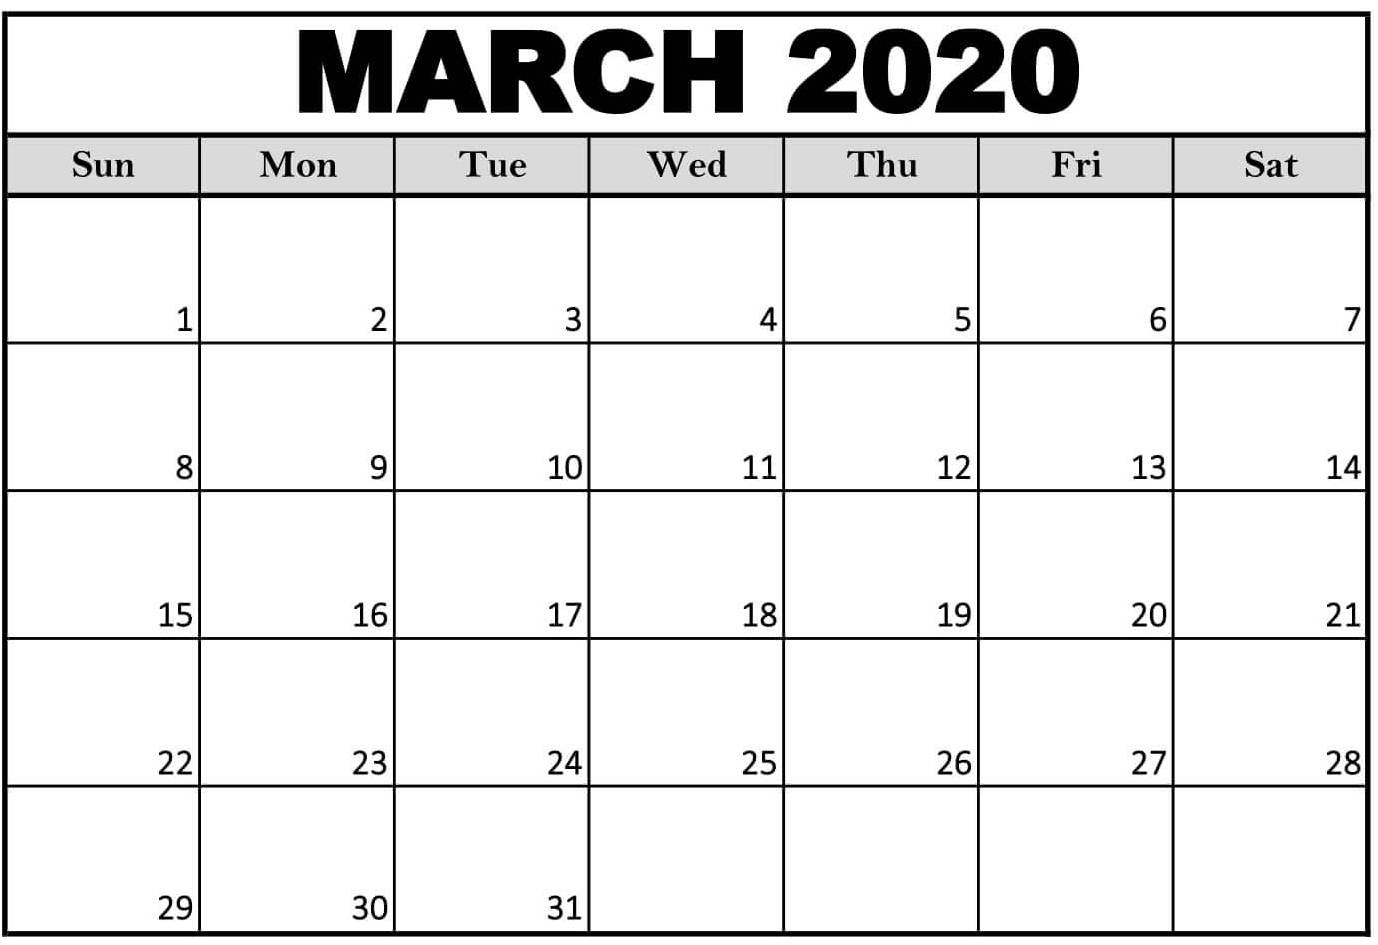 March 2020 Calendar Printable With Notes Excel Size - Set  Full Size Printable Calendar 2020